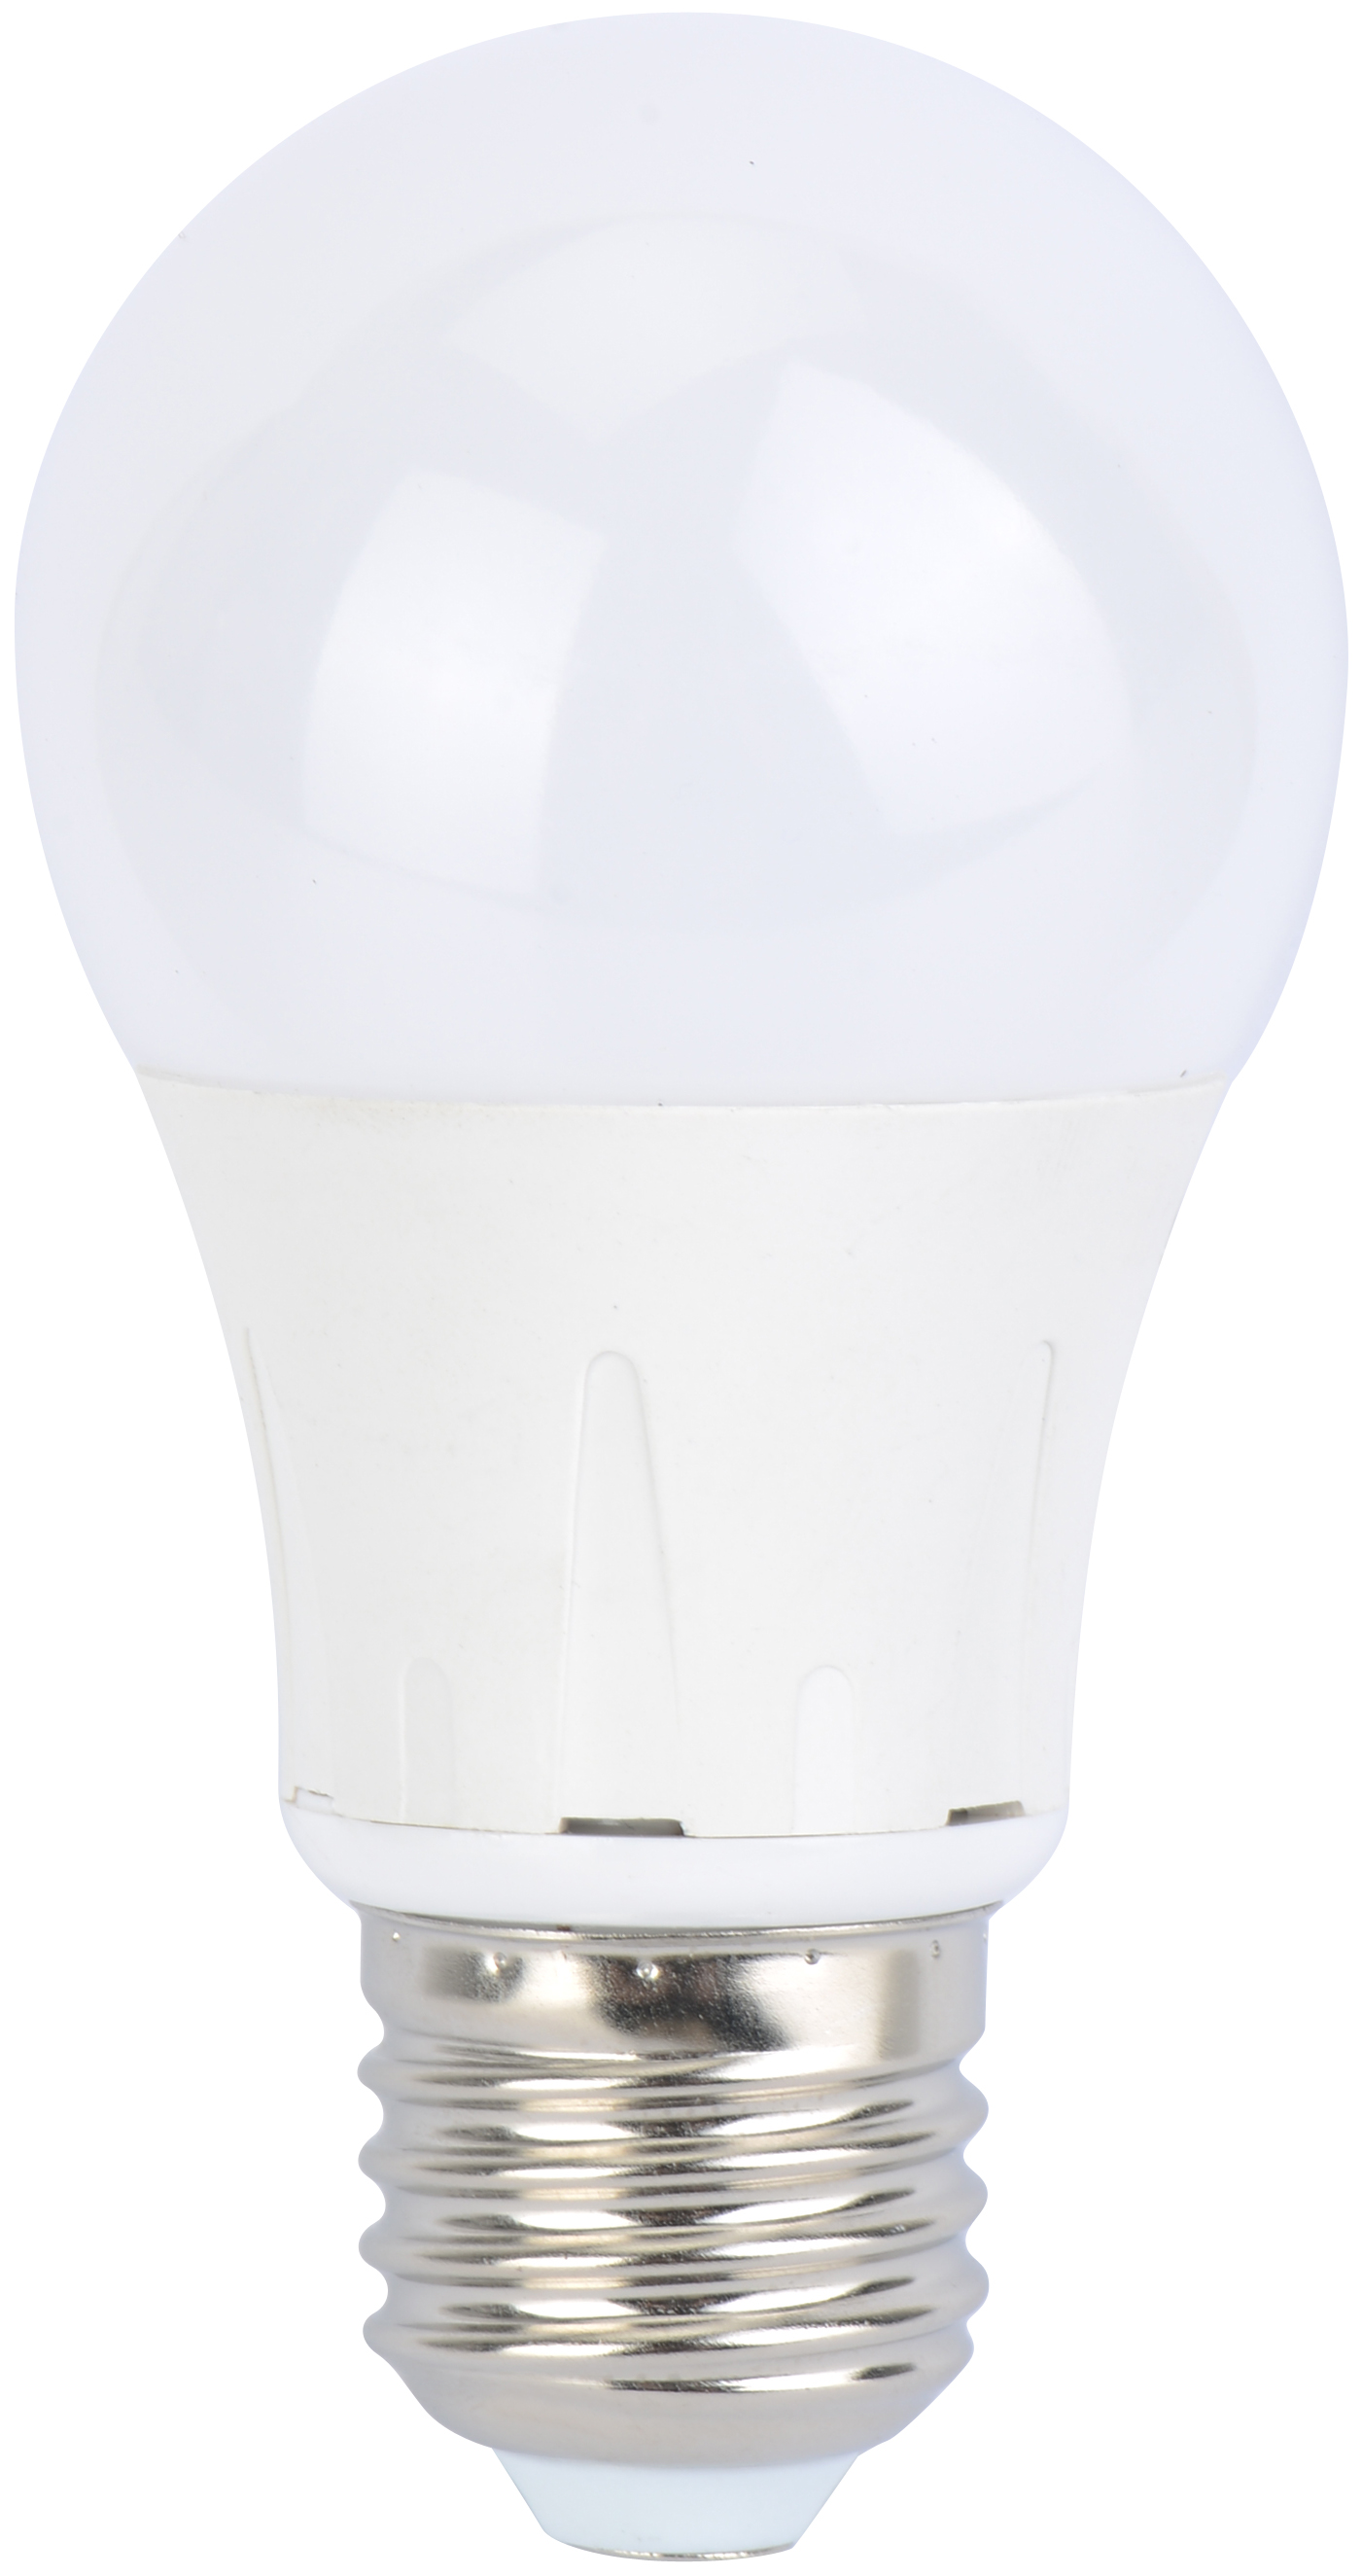 High Quality TUV-GS CE ROHS Passed B55AP LED Bulb 8W 638lm E27